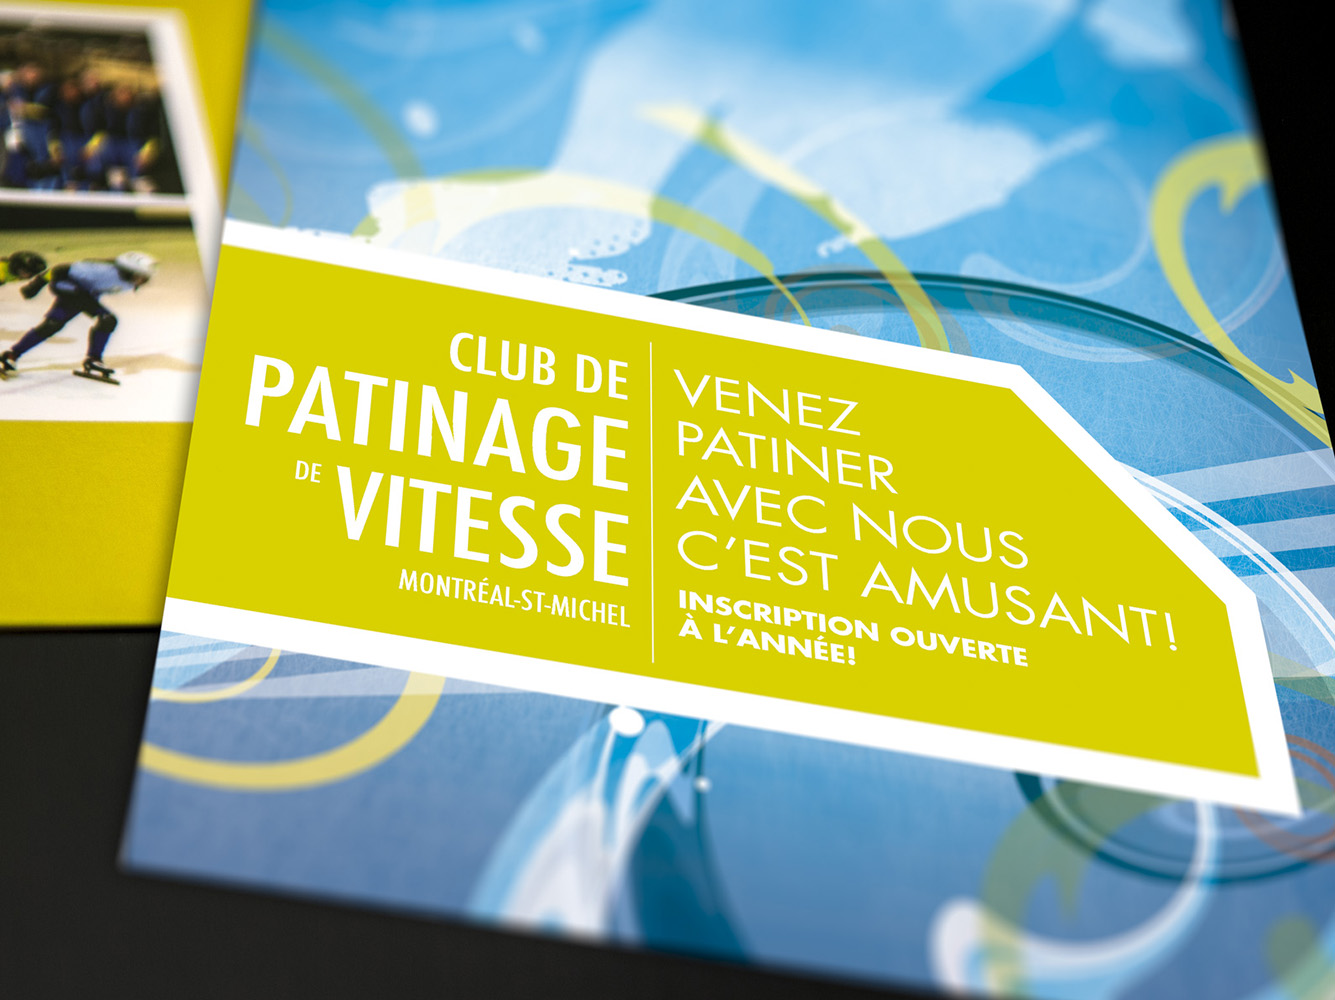 Patinage-vitesse